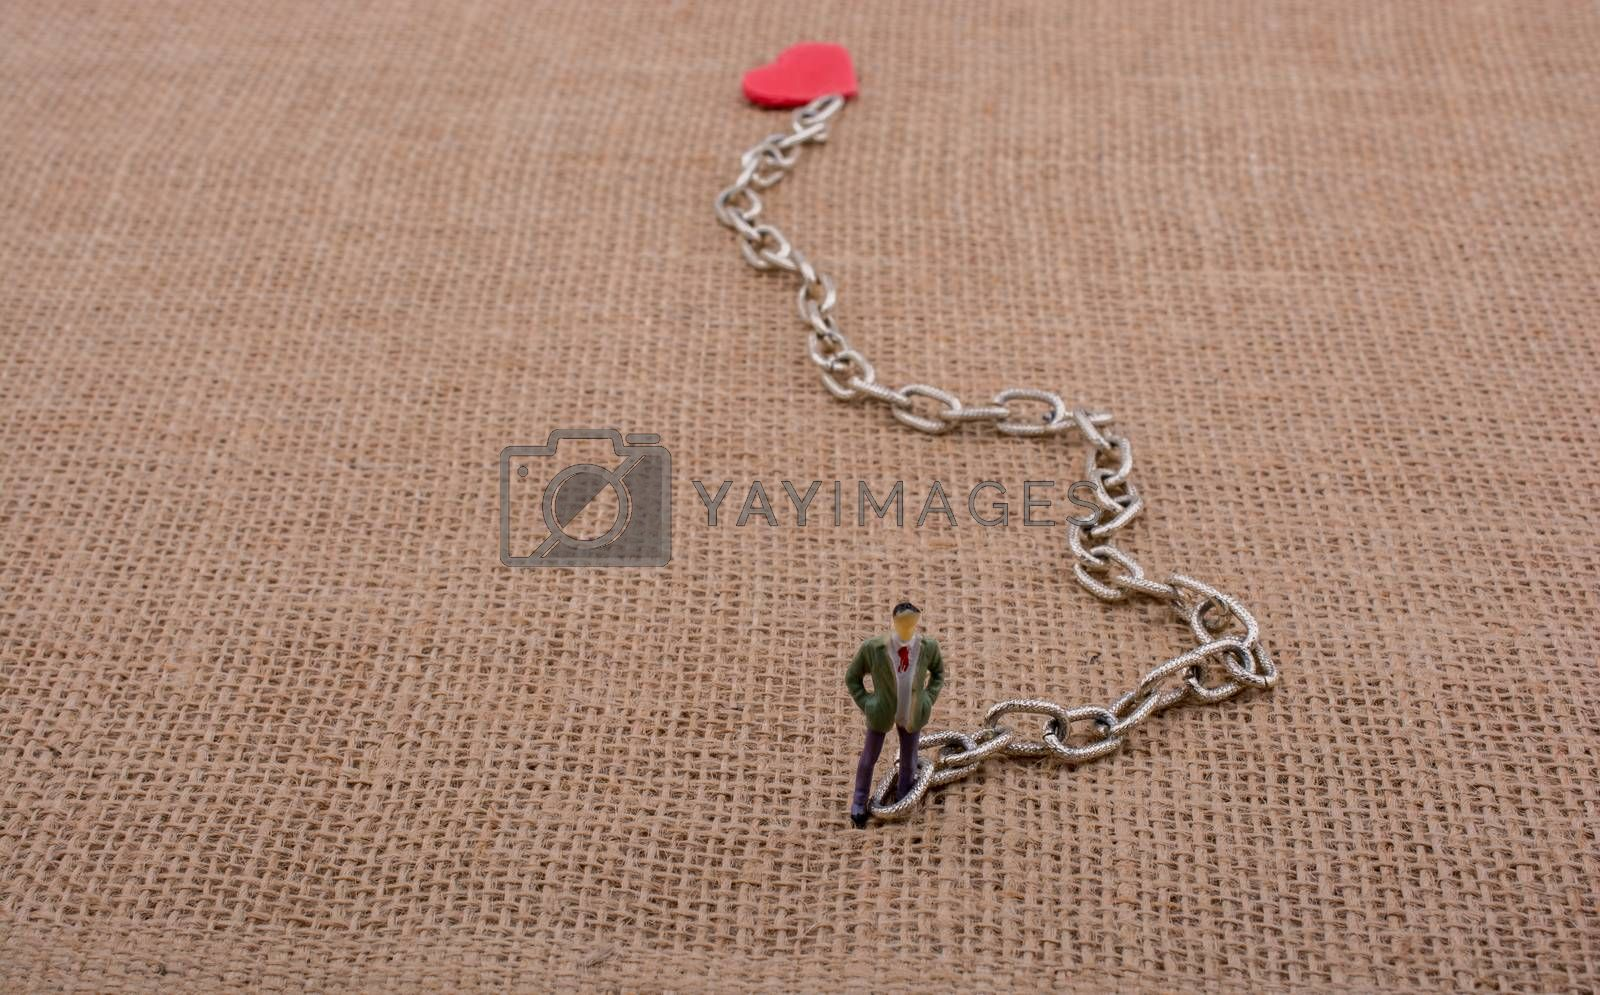 Heart shaped object attached to a man figurine on canvas